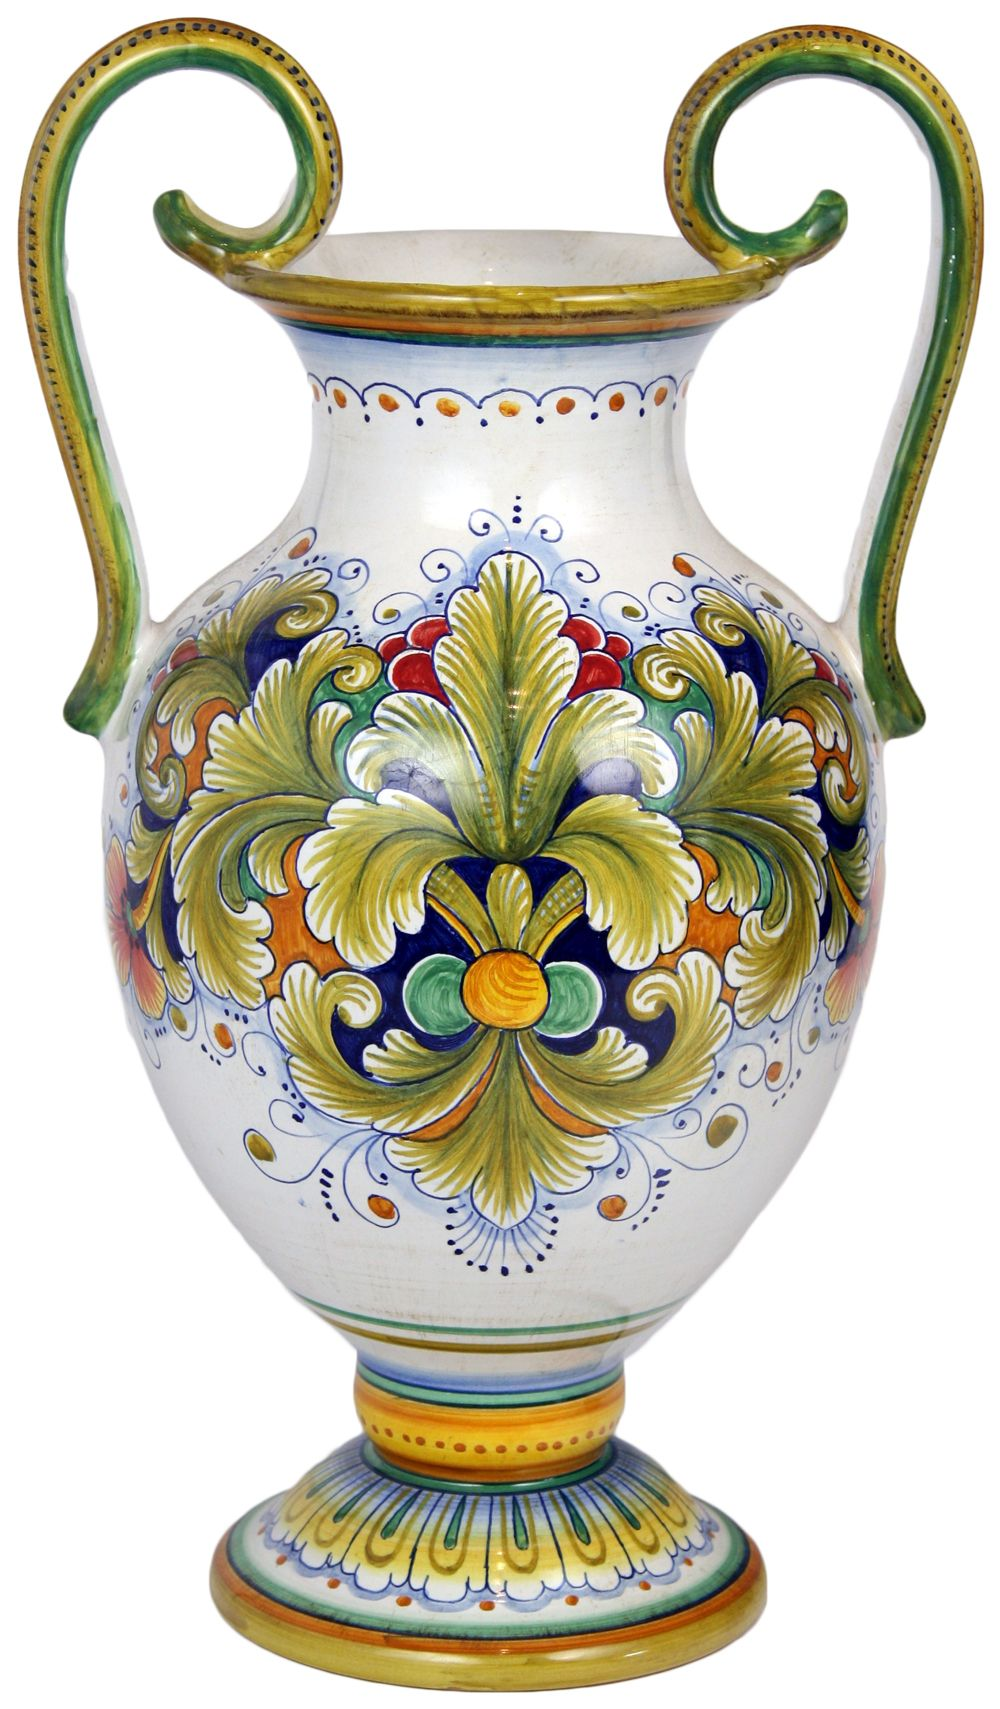 Italian style pottery italian ceramic handled table vase italian table vase acanthus decorative accessories by sorella luna inc italian majolica table vase acanthus style in high x 10 in diameter reviewsmspy